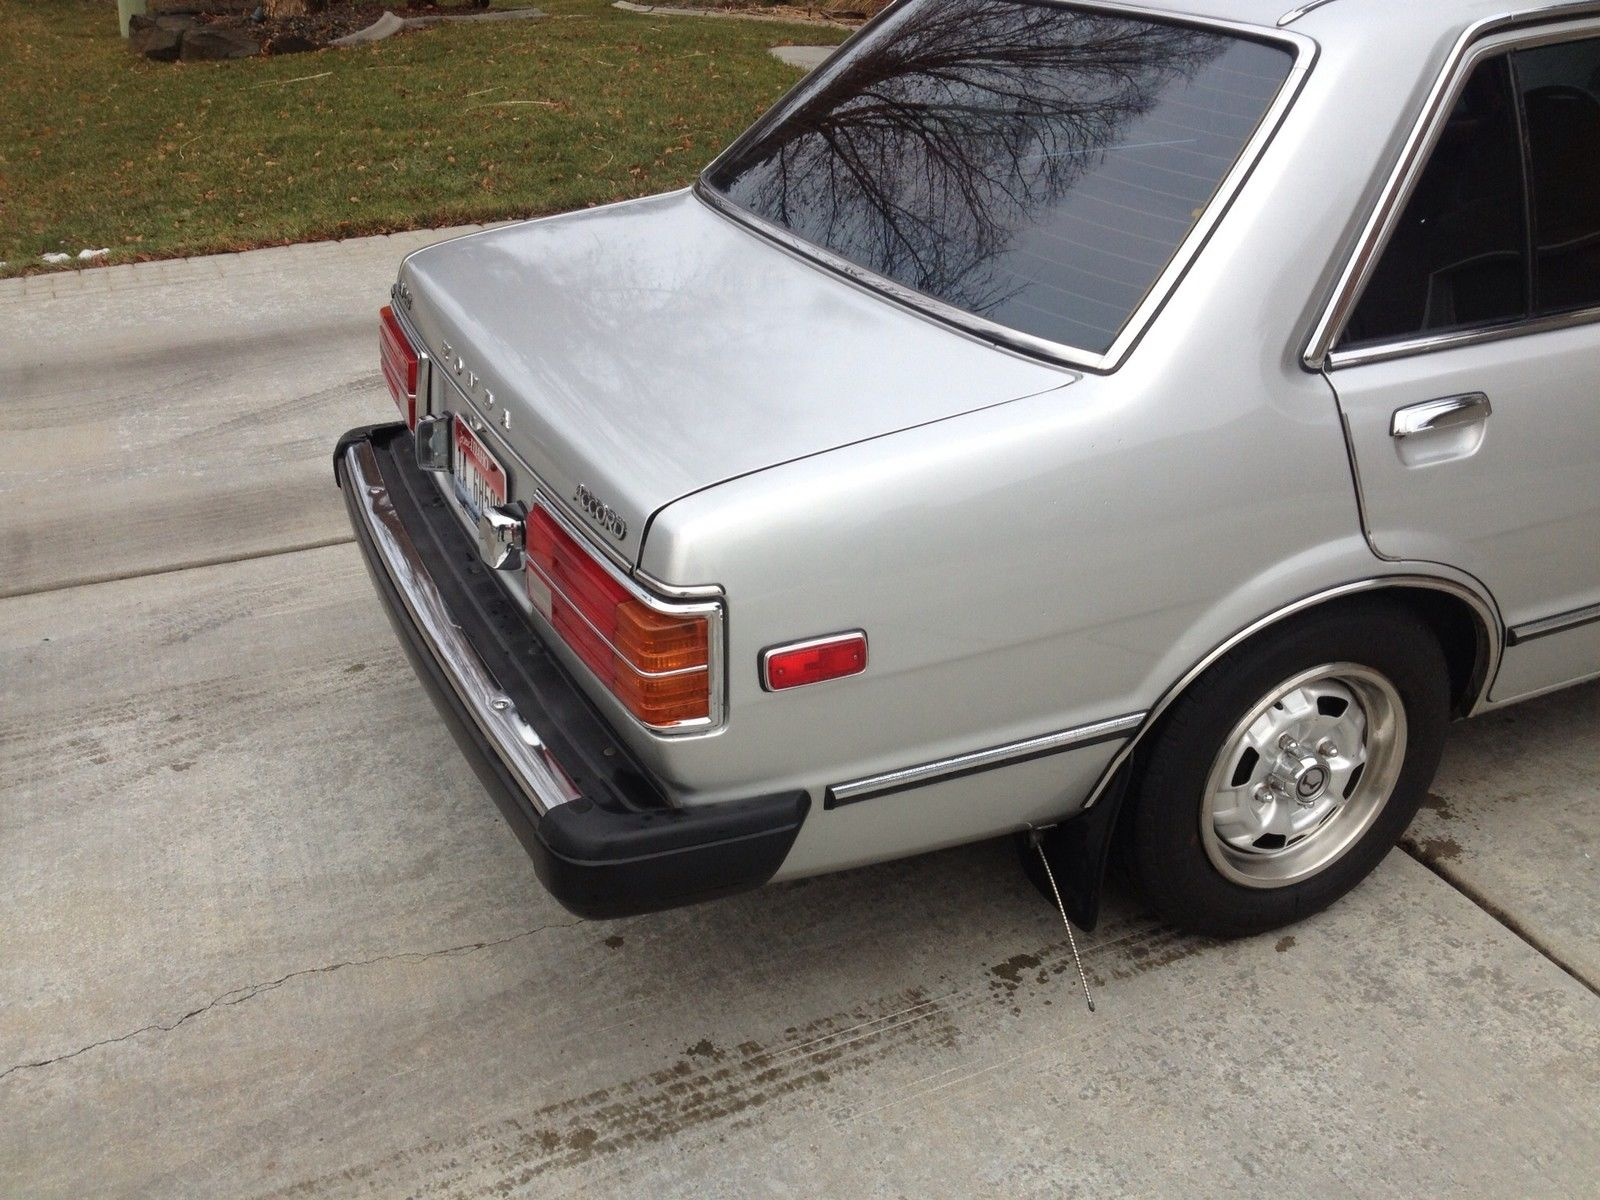 1979 Honda Accord Cvcc 65k Original Miles Hondamatic Transmission